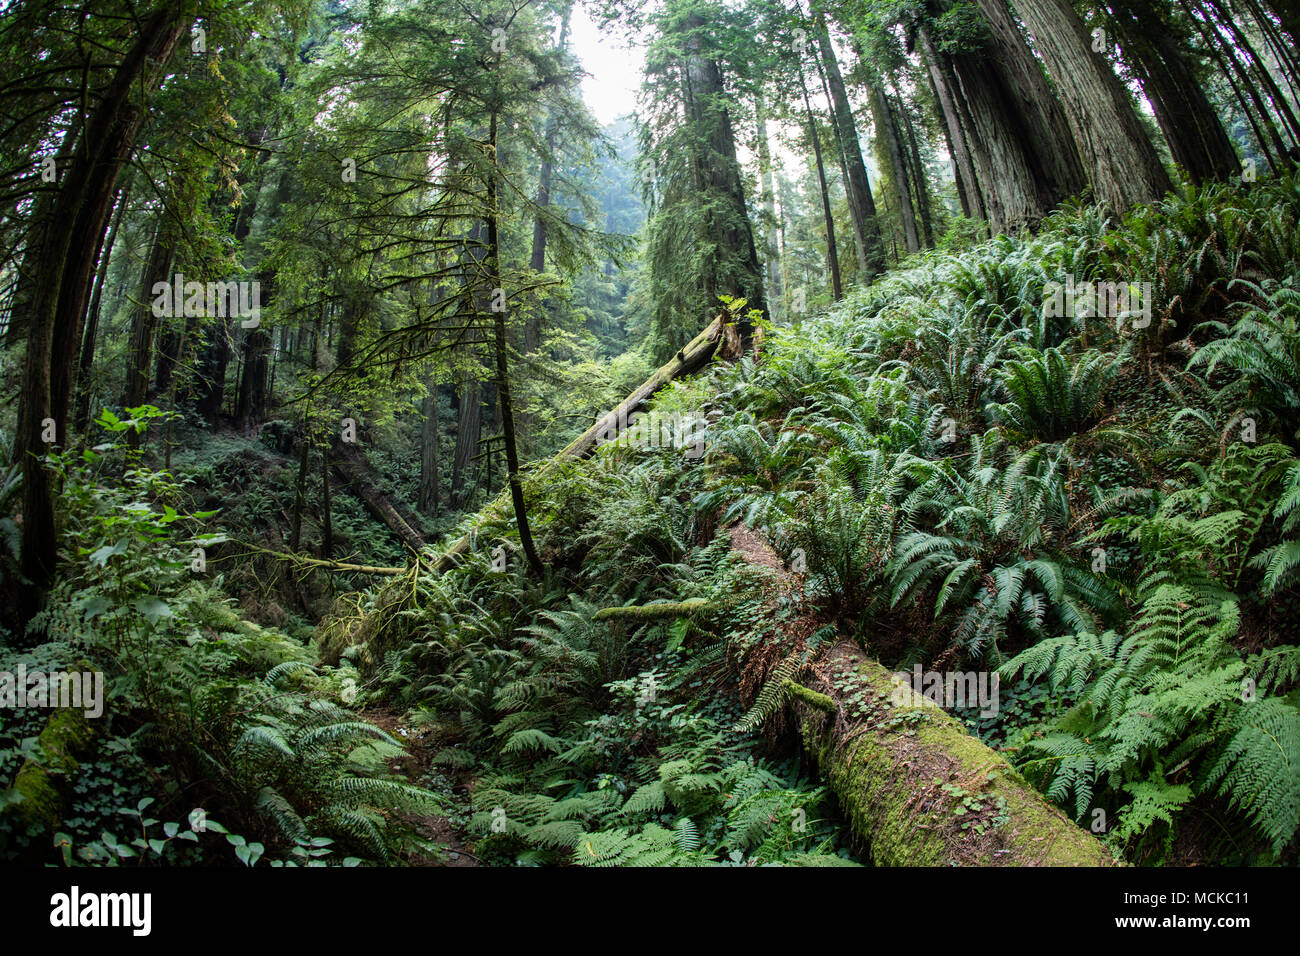 Beautiful Northern California Drop Top: Luxuriant Plant Growth Occurs In Redwood National Park In